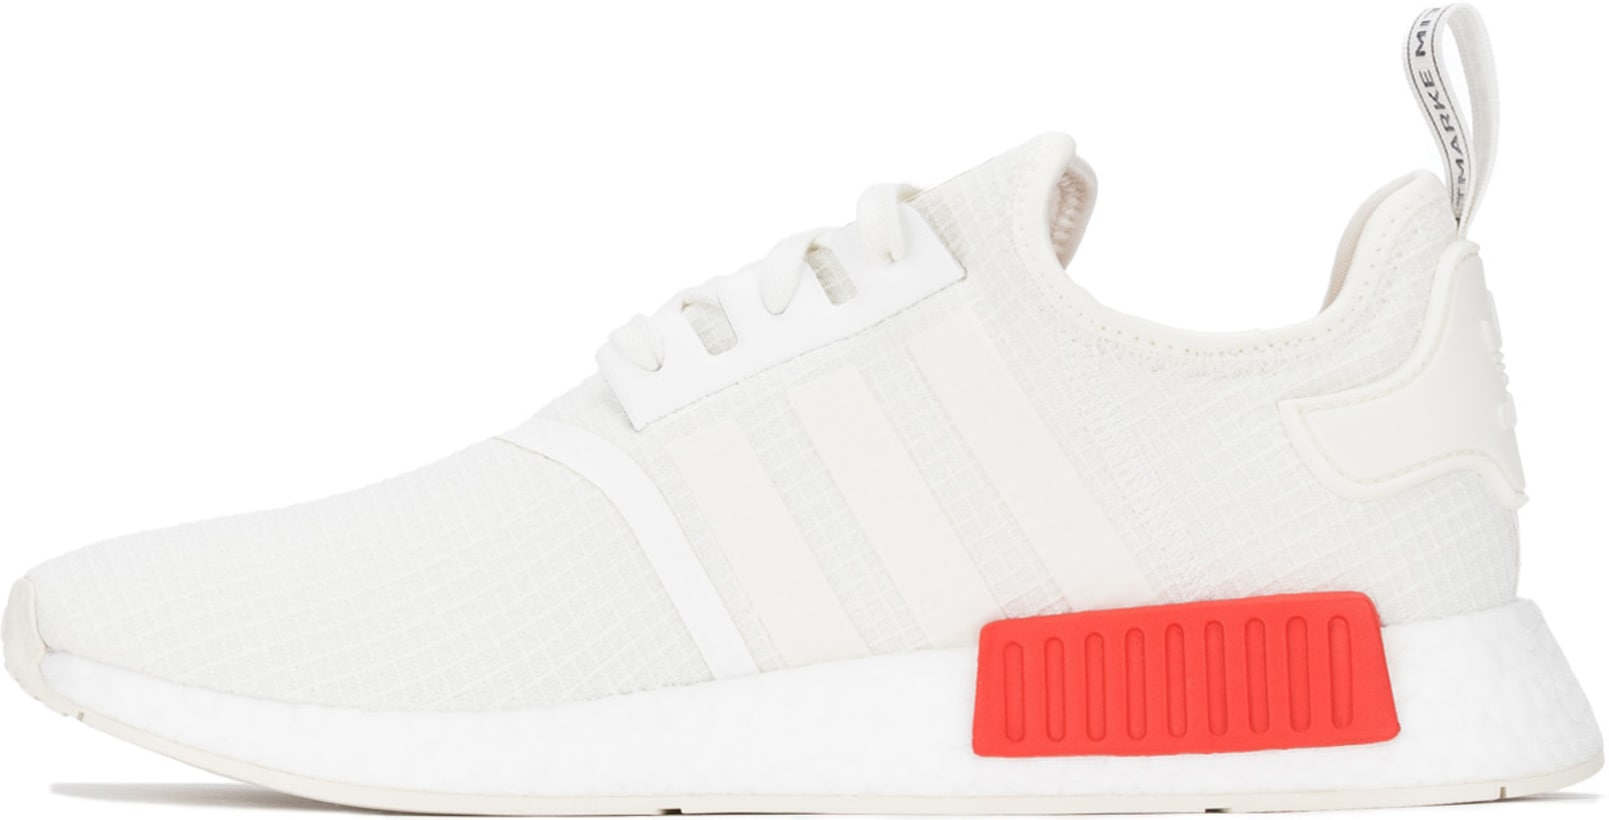 new style a15fe 2e679 adidas Originals - NMD R1 - Off White/Off White/Lush Red